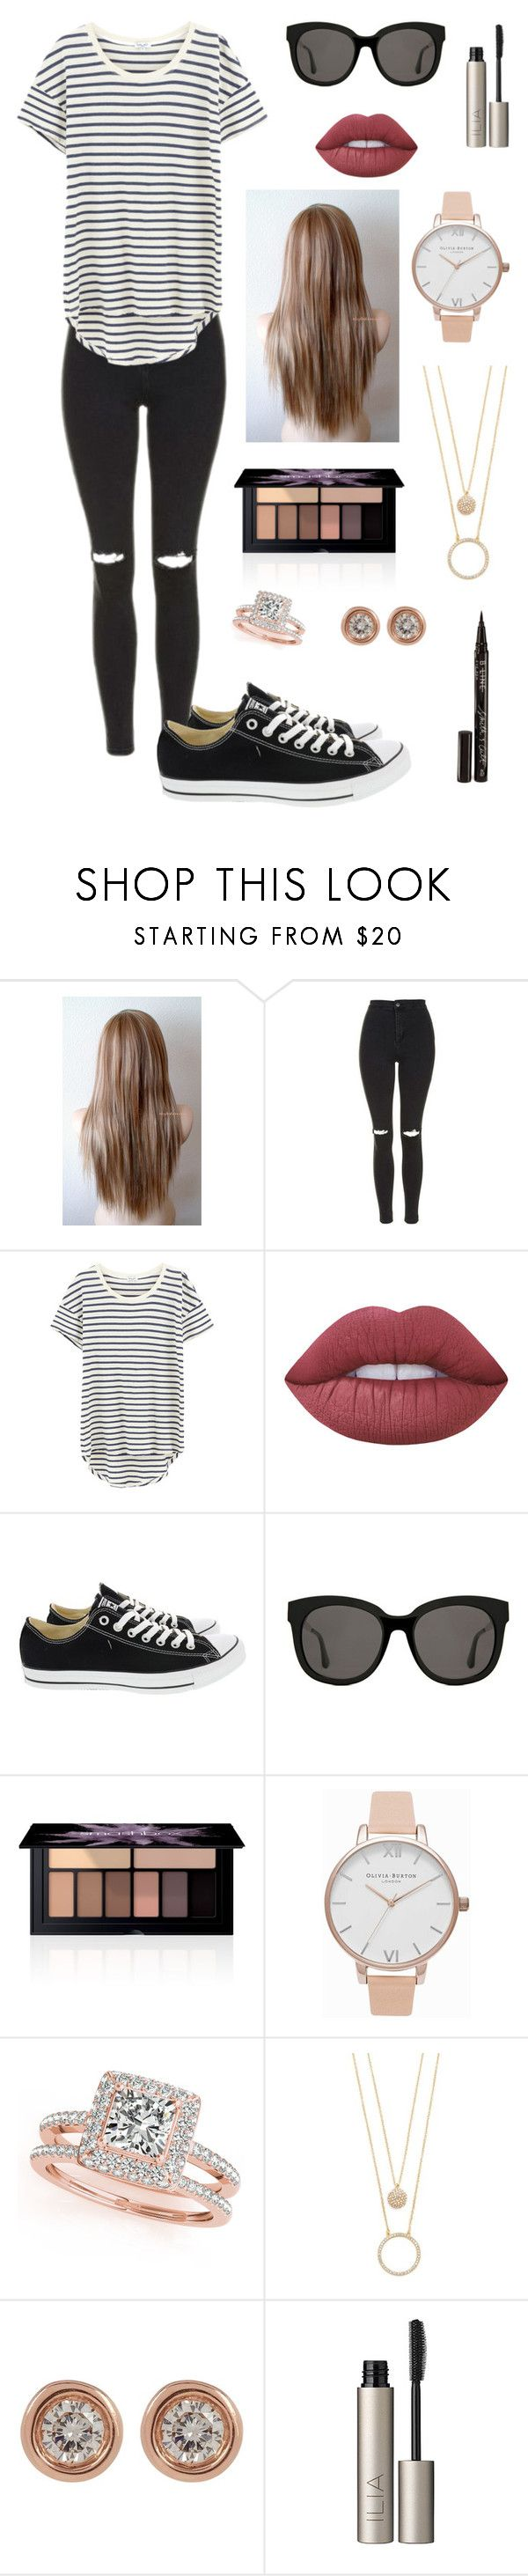 """Casual Dress #14"" by rachelakopp on Polyvore featuring Topshop, Splendid, Lime Crime, Converse, Gentle Monster, Smashbox, Olivia Burton, Allurez, Kate Spade and Ron Hami"